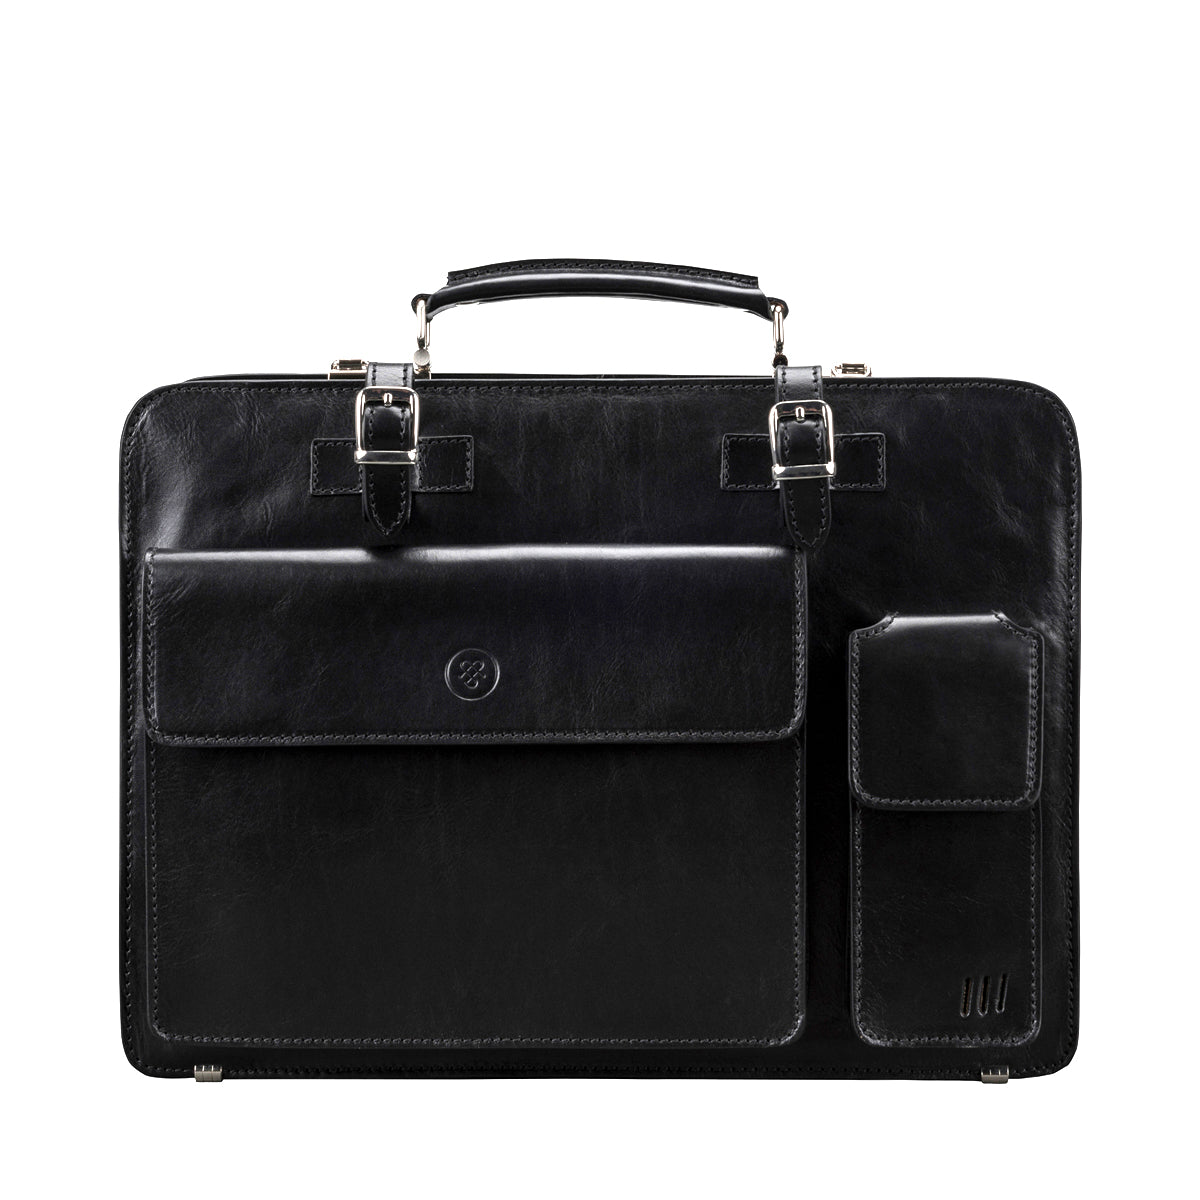 Image 1 of the Alanzo' Black Veg-Tanned Leather Briefcase